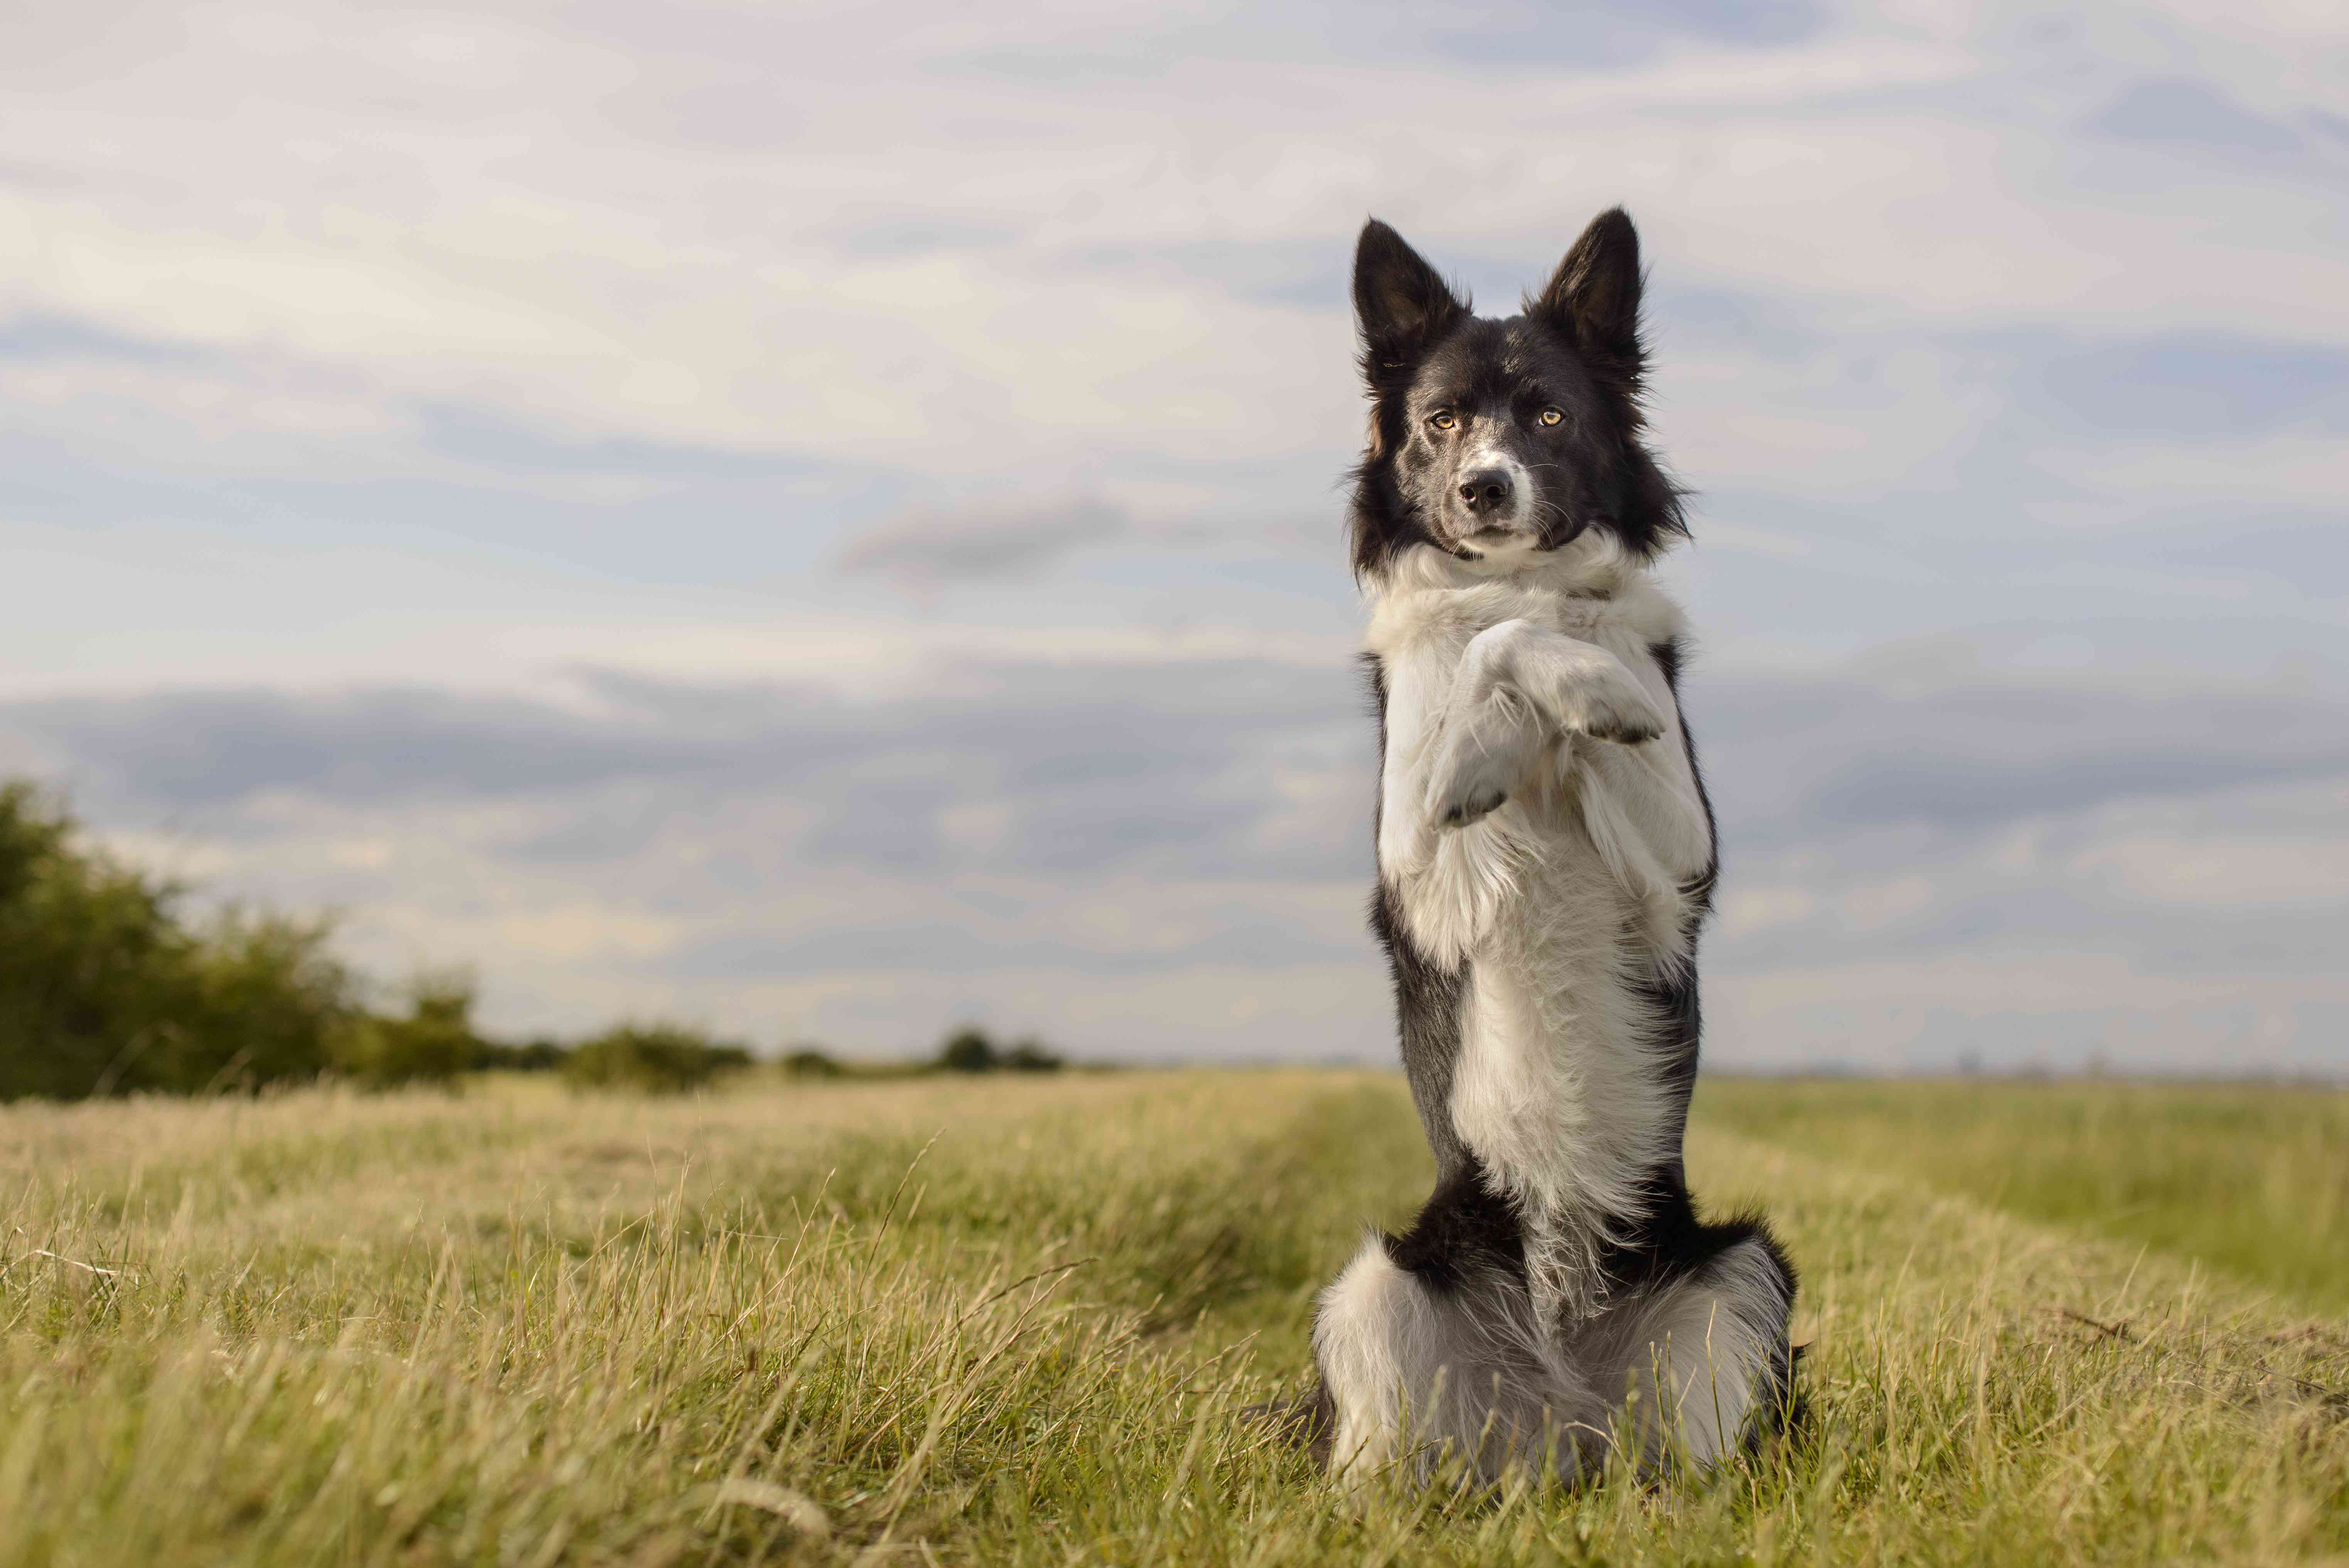 black and white dog in a field doing trick standing on two paws